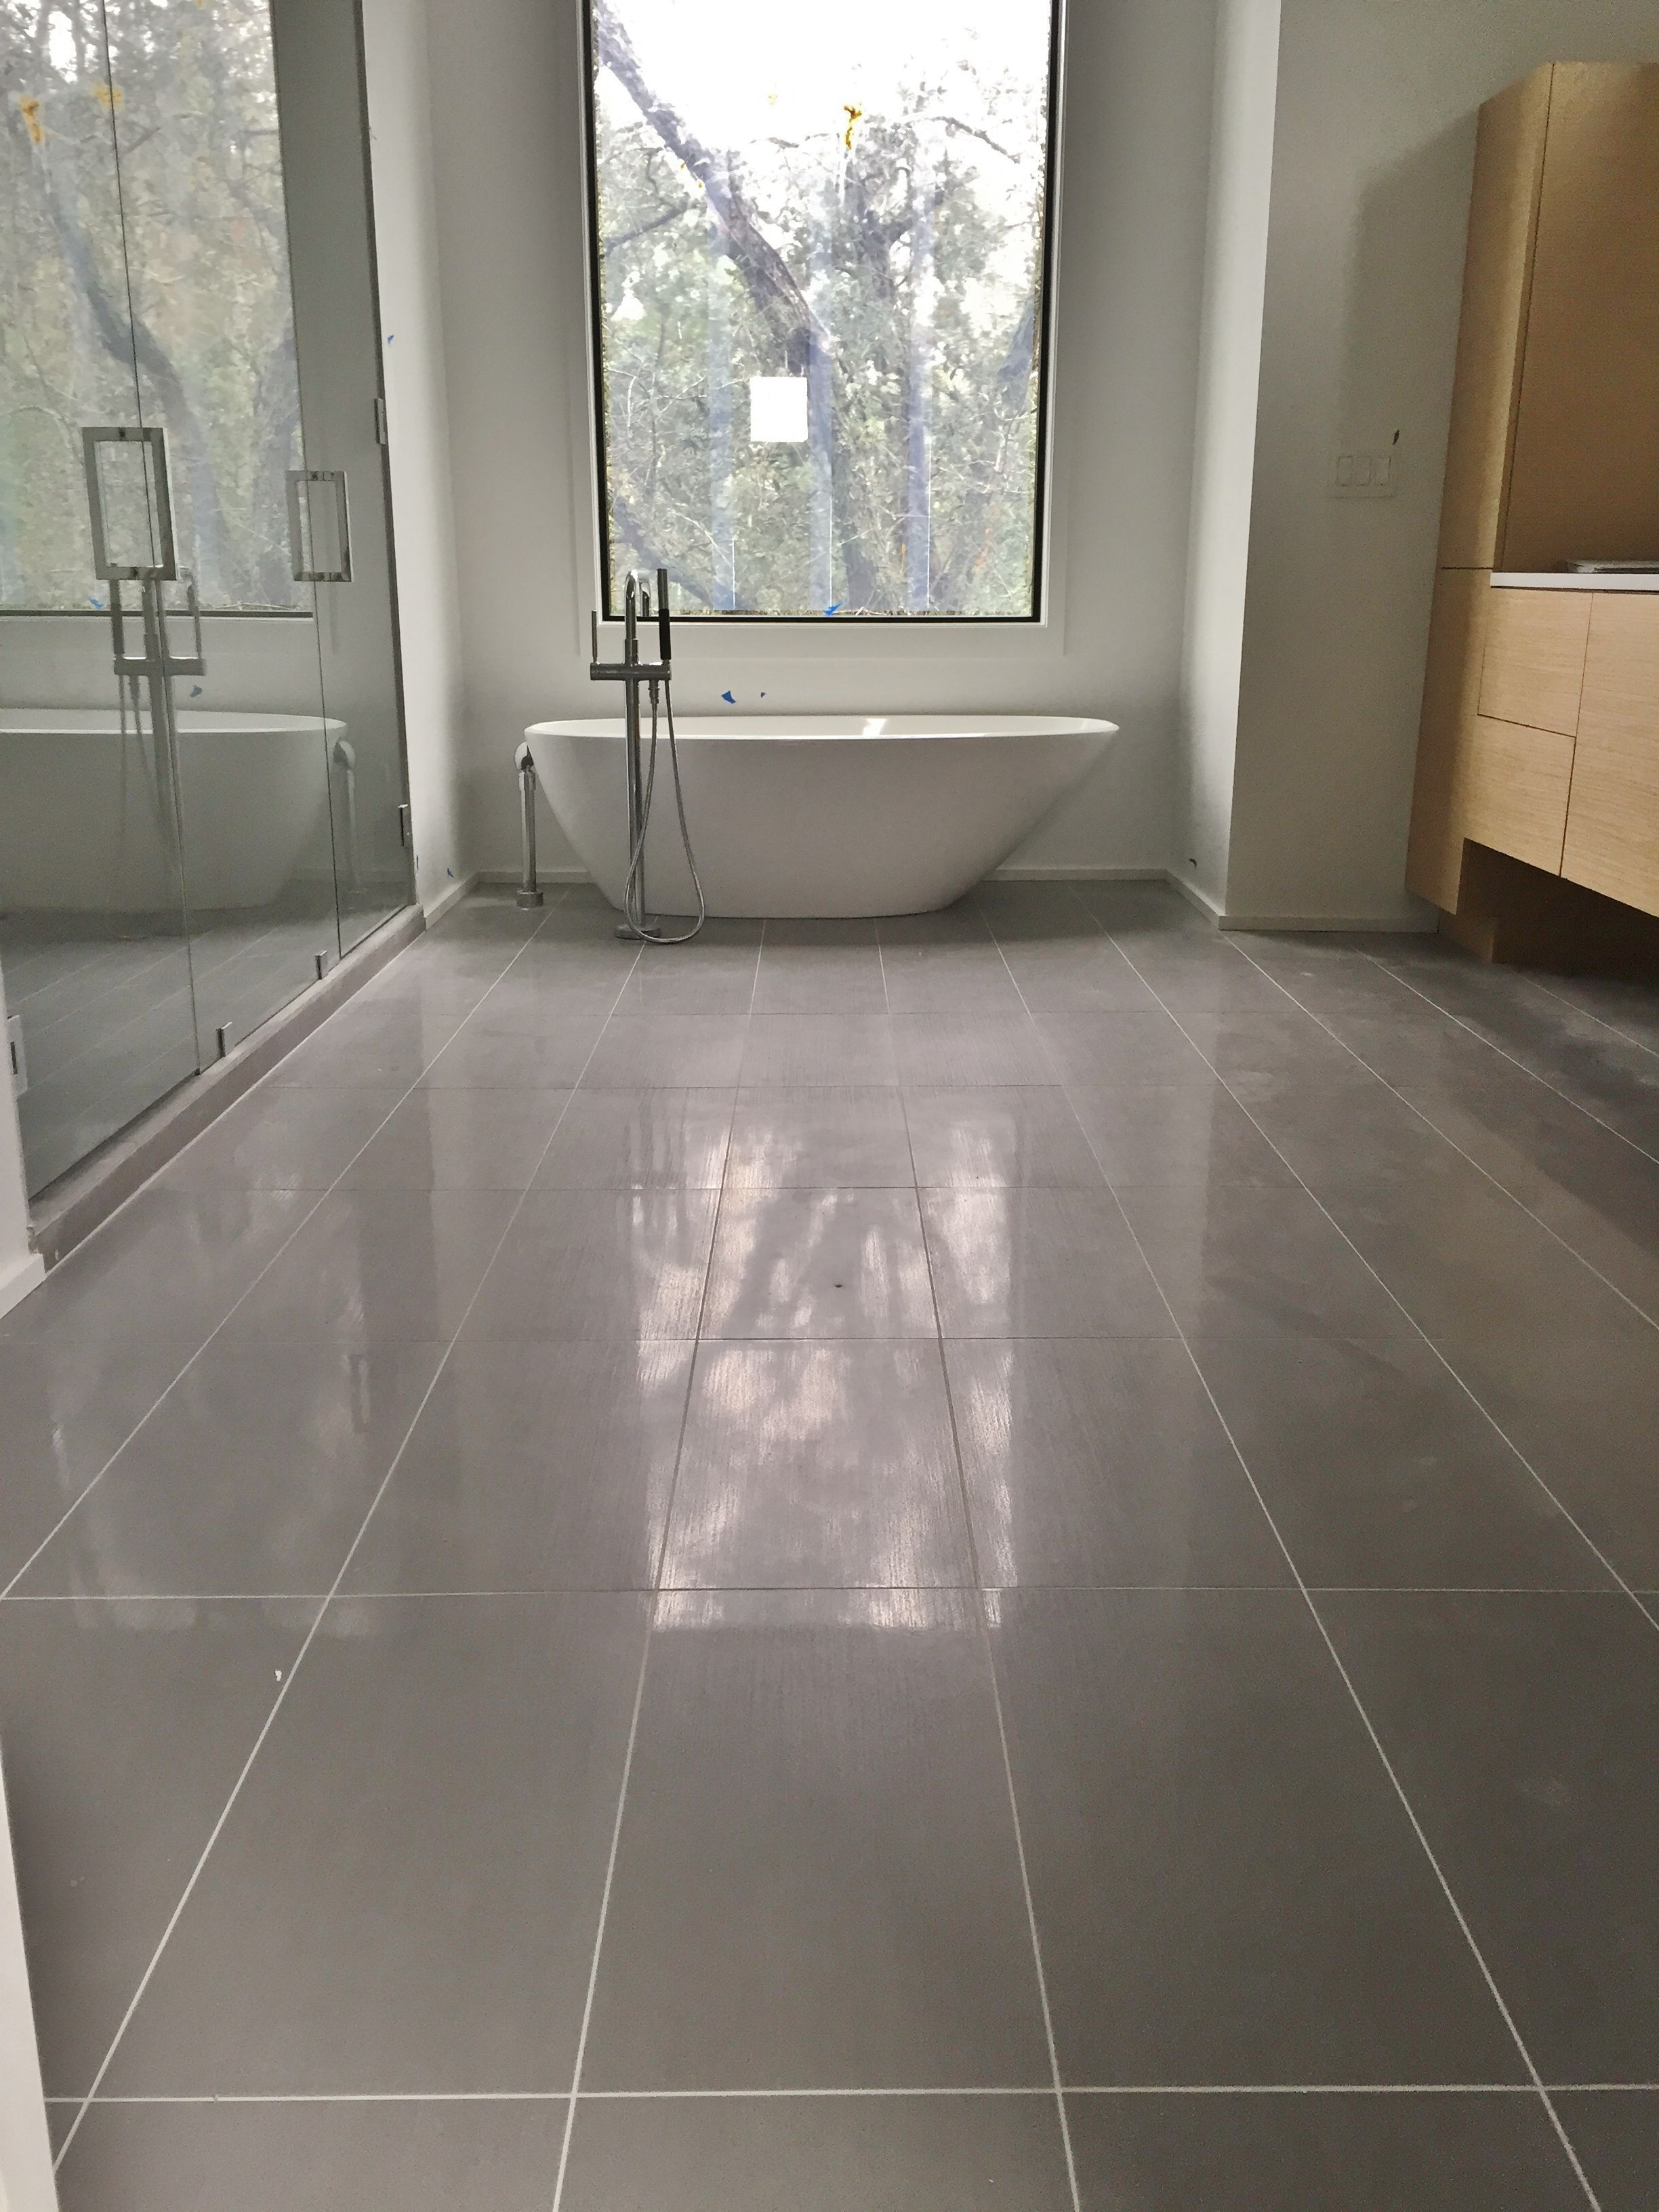 12x24 porcelain tile on master bathroom floor tile jobs weve 12x24 porcelain tile on master bathroom floor dailygadgetfo Choice Image